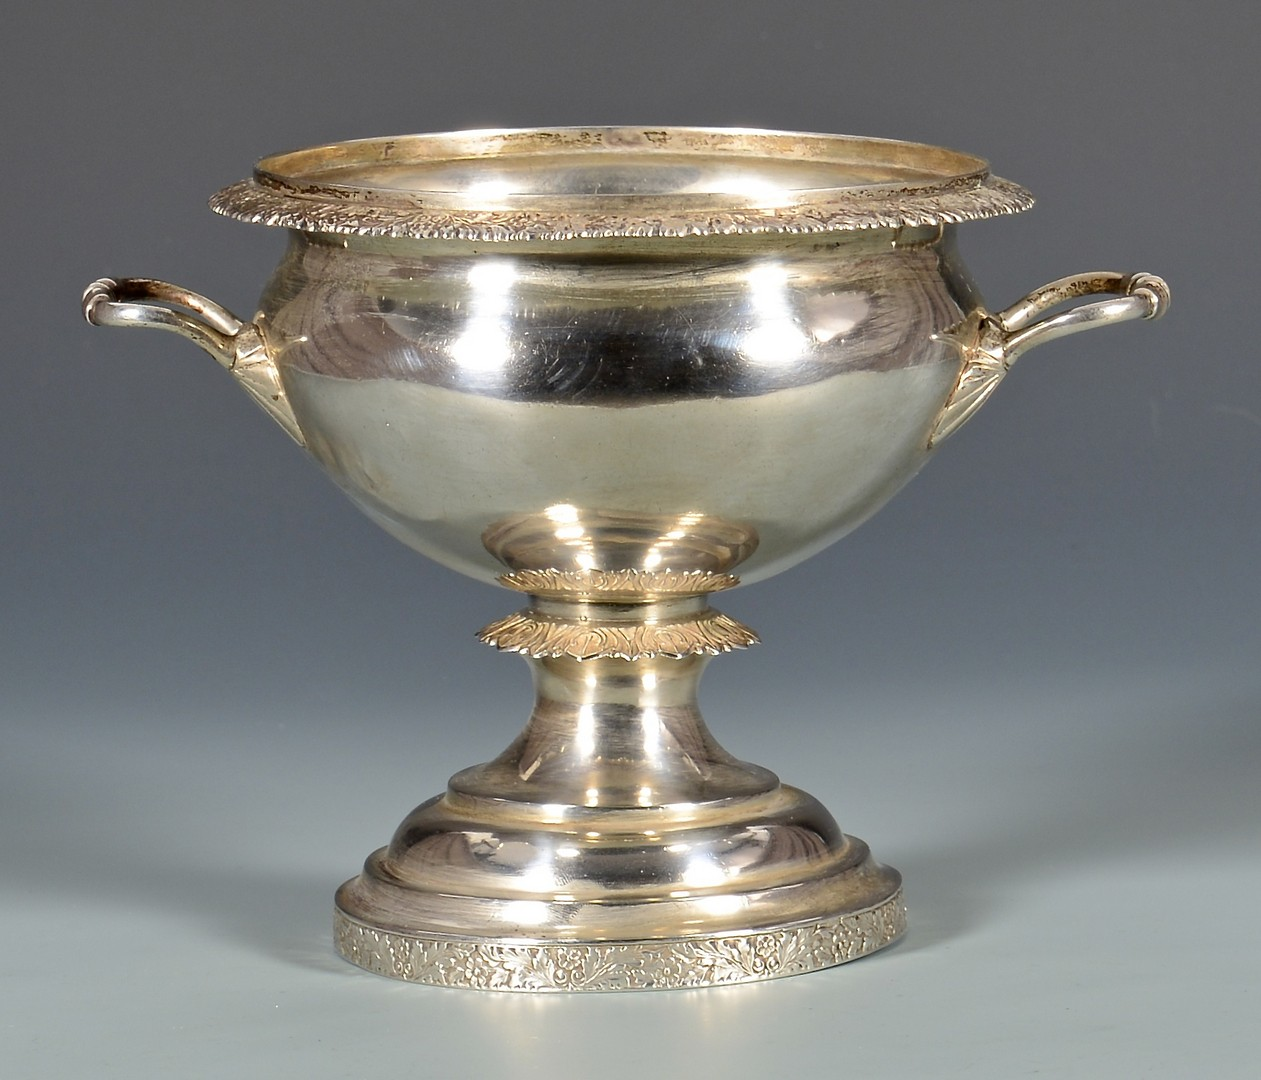 Lot 128: F.H. Clark Memphis coin silver waste bowl